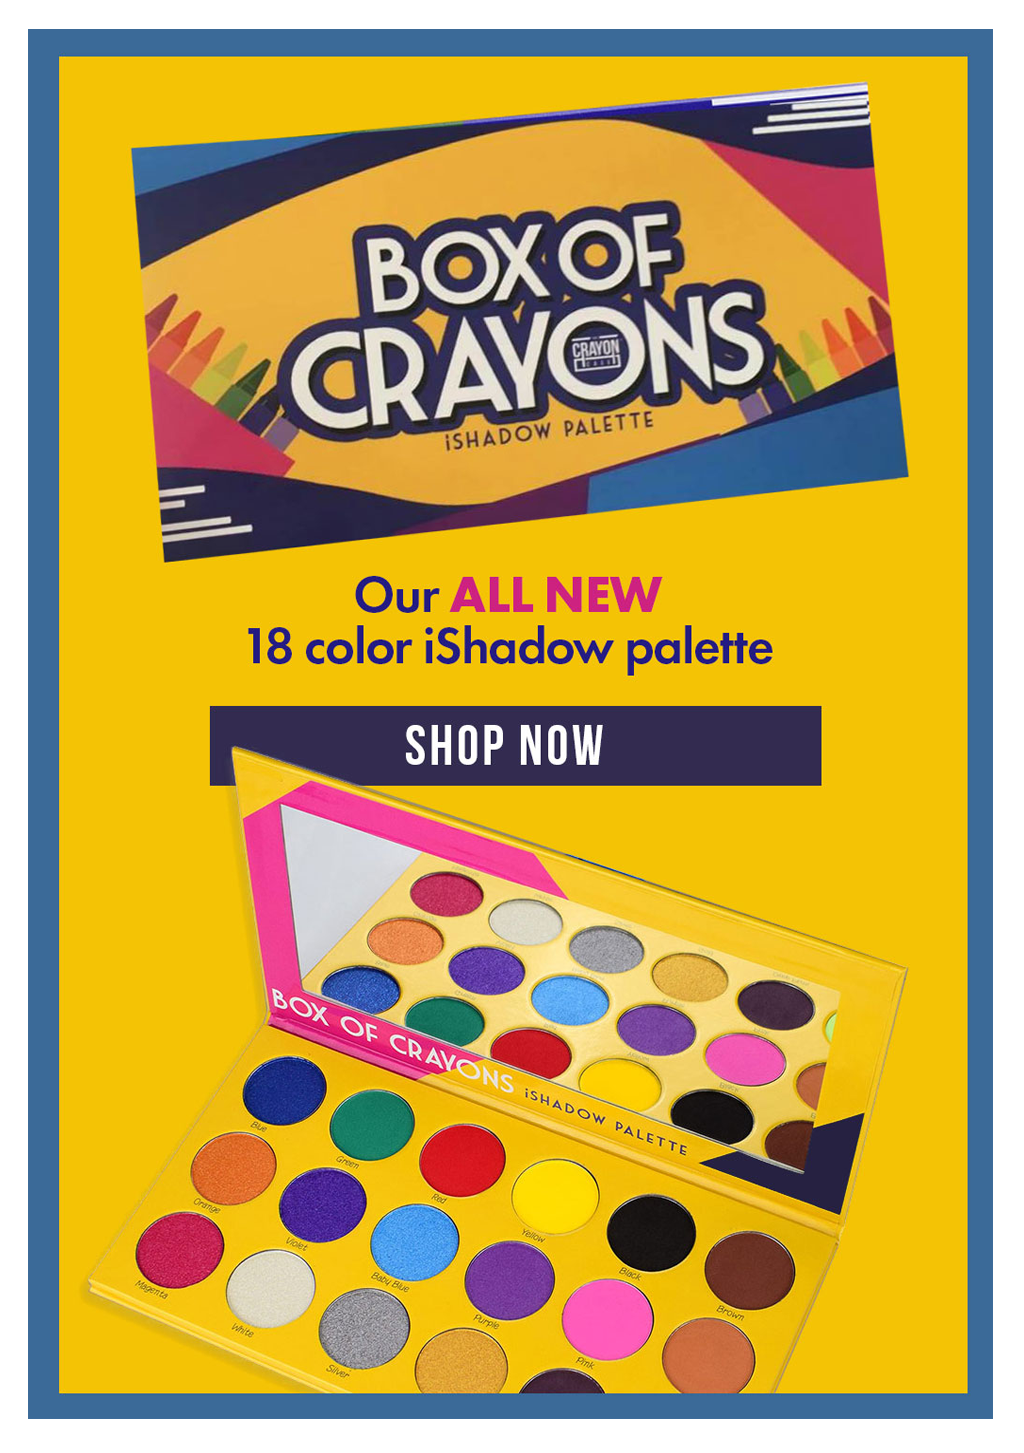 Box Of Crayons Palette Crayon, What makes you beautiful